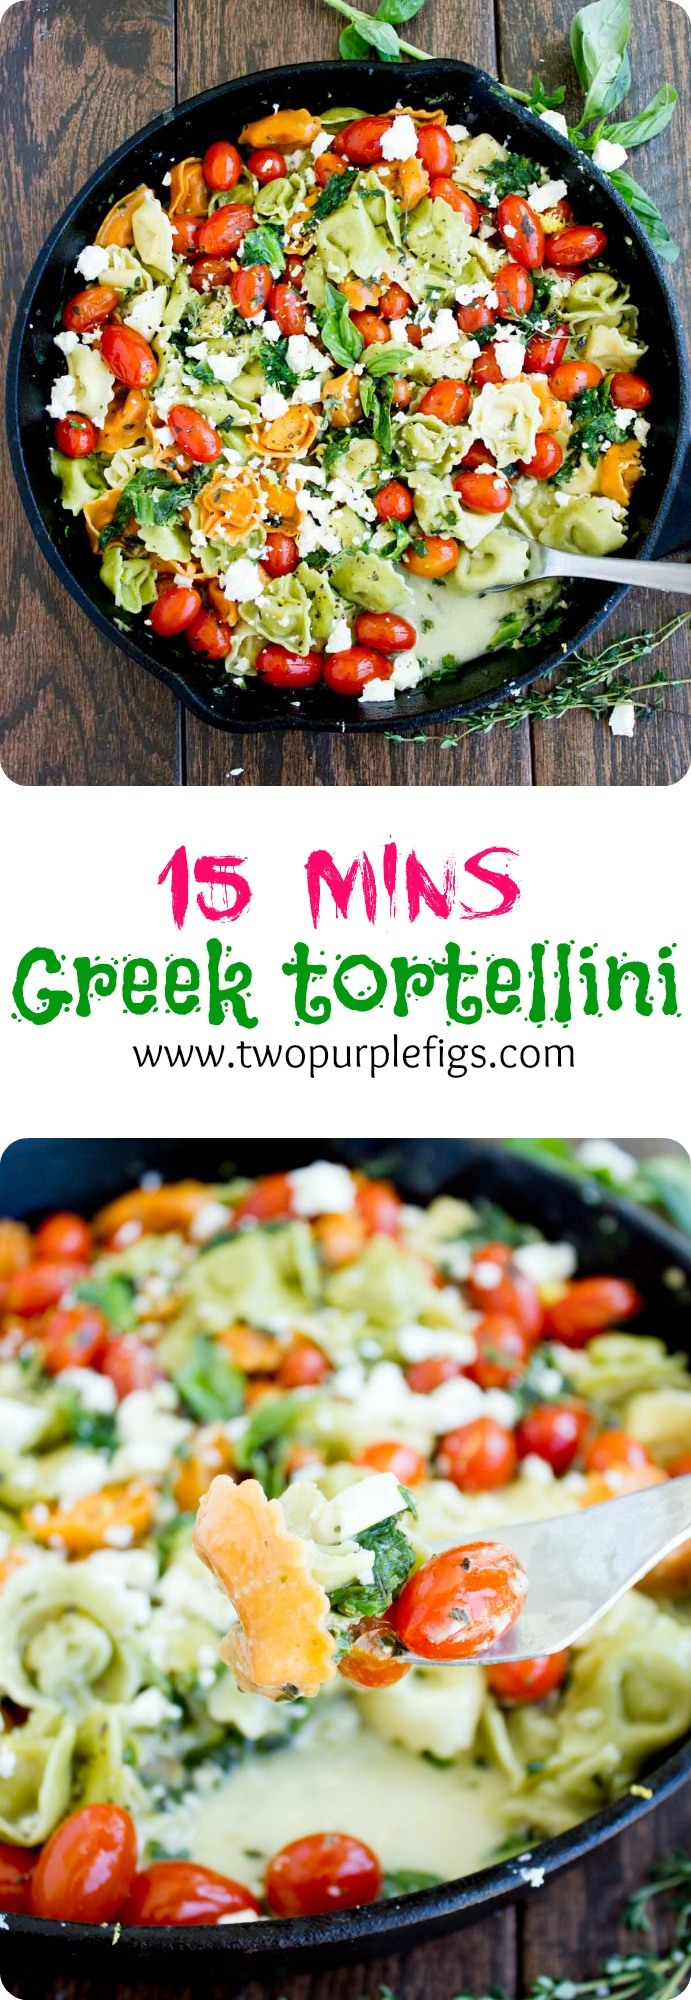 15 Minutes Greek Tortellini | This perfect 10 minute Greek cheese tortellini recipe is a simple, last-minute lunch or dinner you can whip up in 10 minutes! Loaded with garlic, herbs, feta cheese, tomatoes, and lemon zest—it's a burst of flavor and freshness. #pastaskillet, #greekrecipes, #tortellini, #easypastarecipes, #cheesetortellini